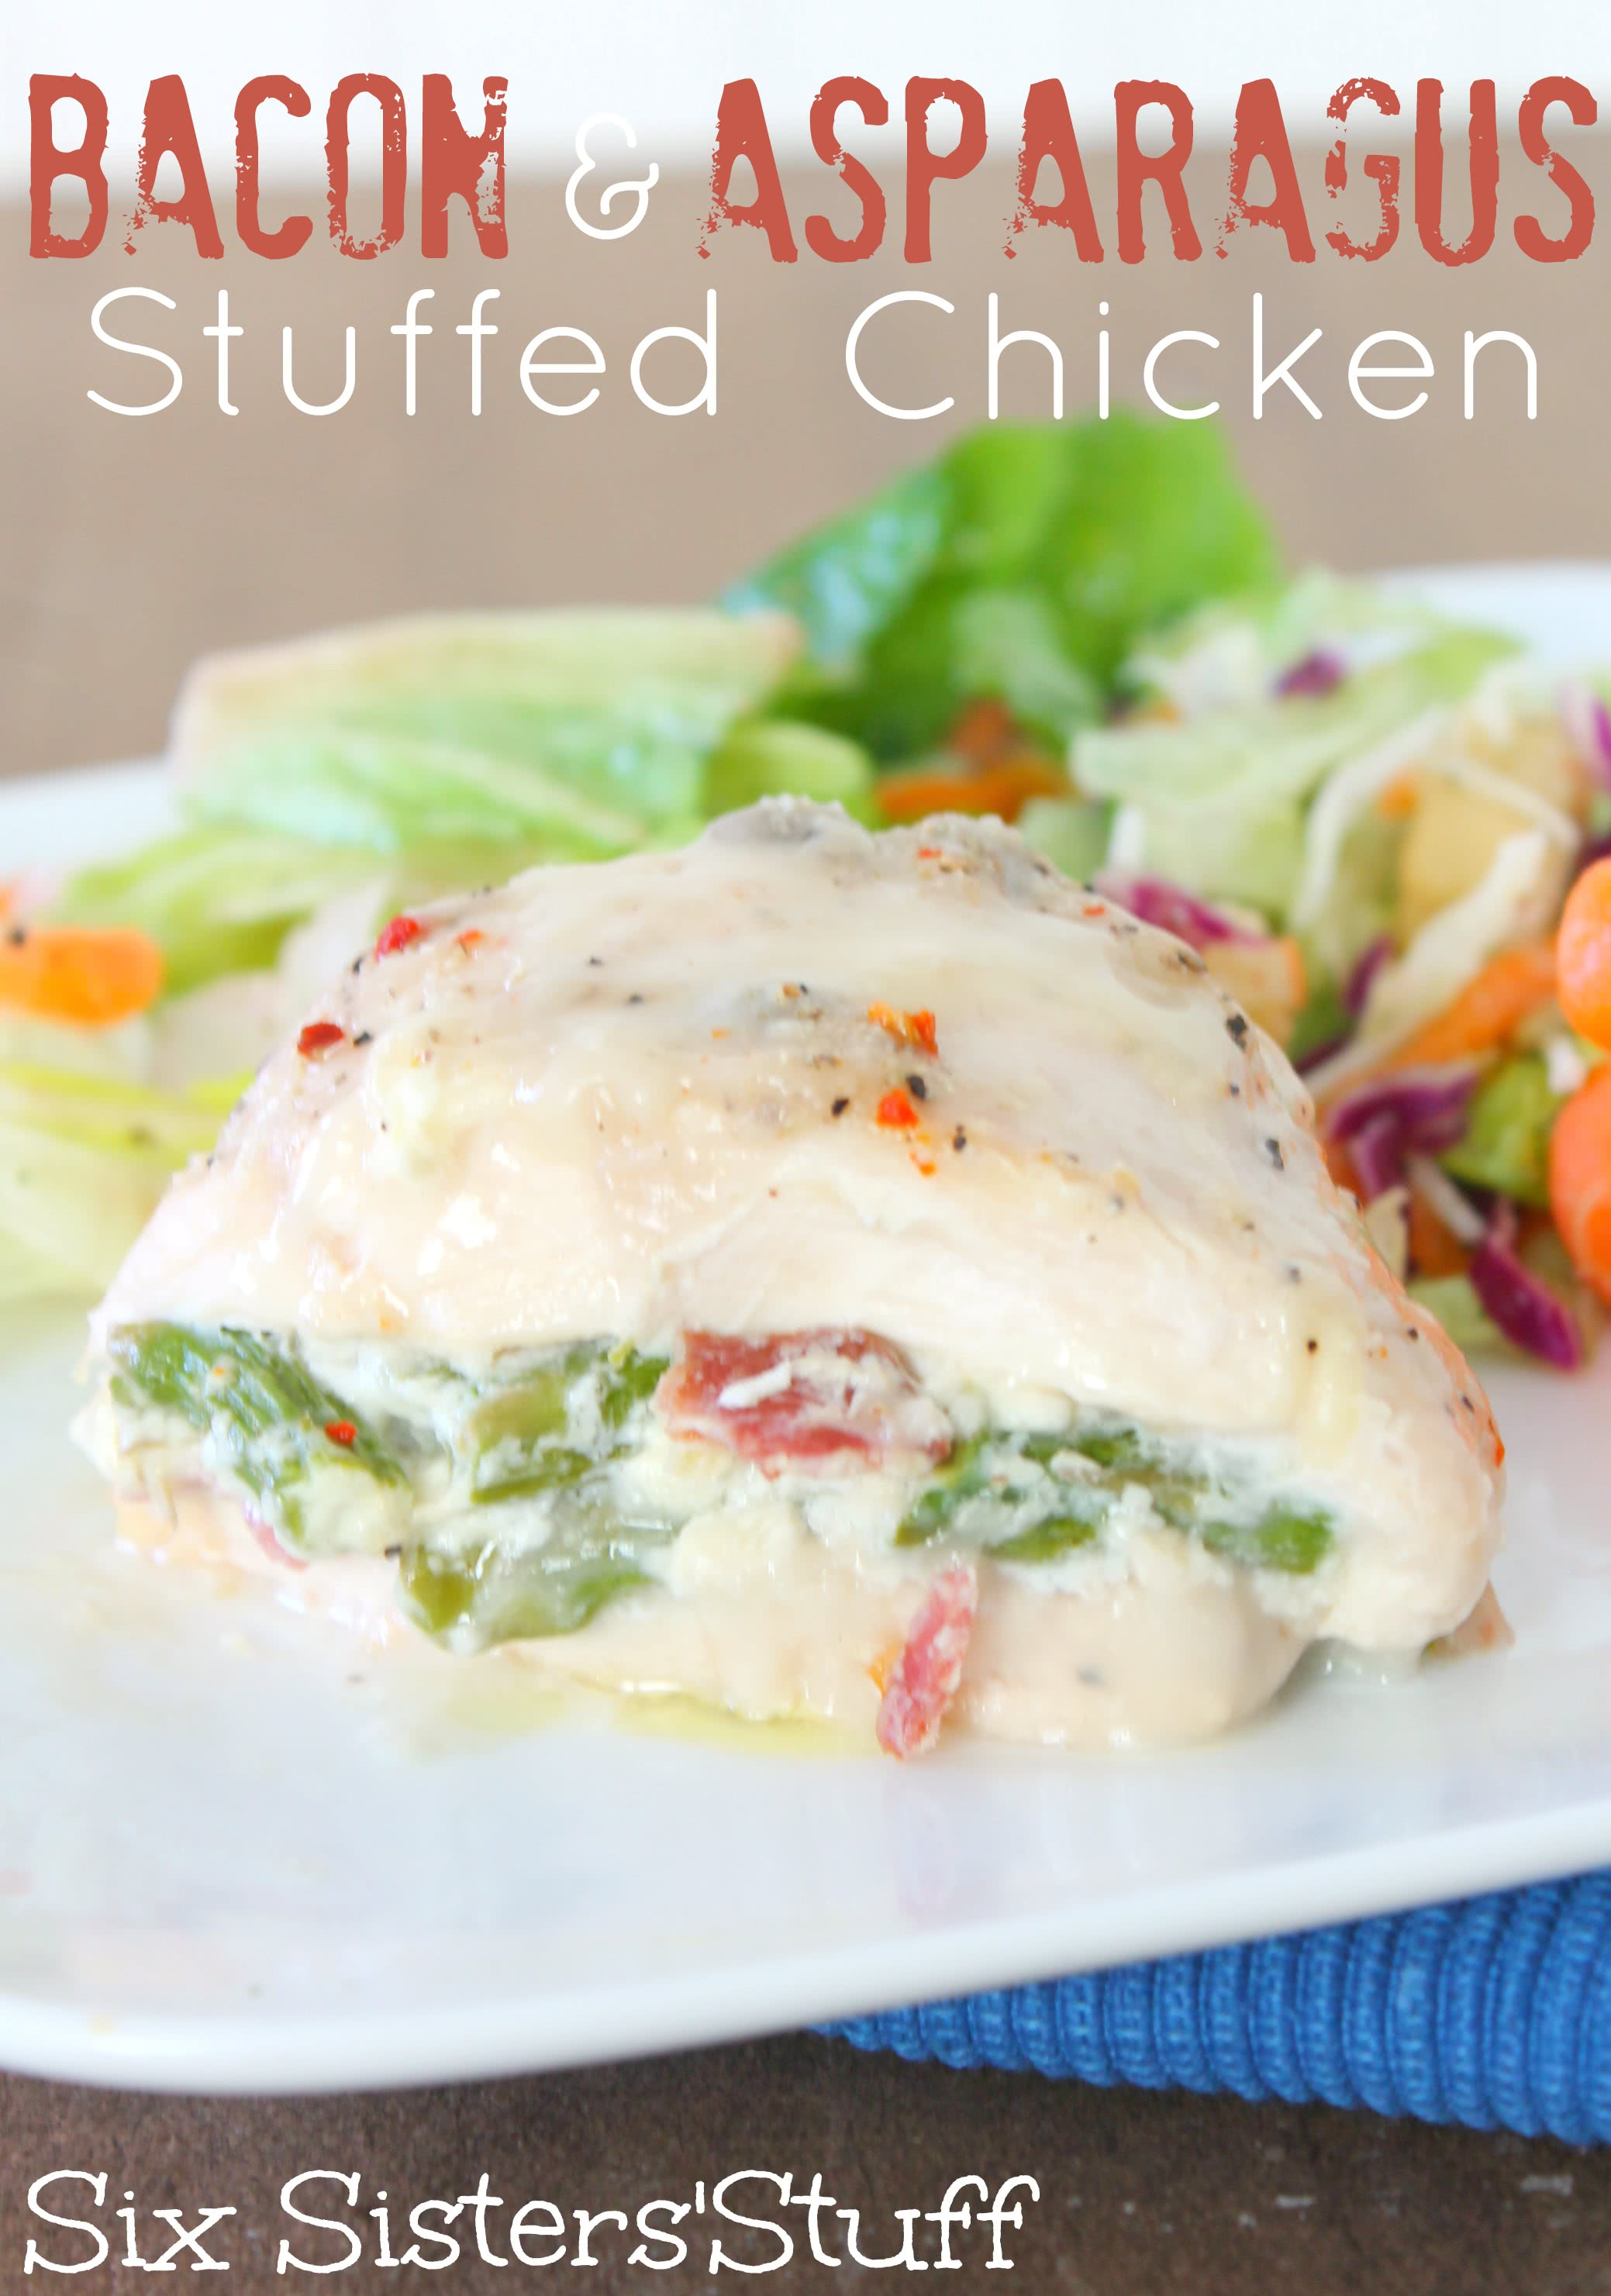 Bacon and Asparagus Stuffed Chicken